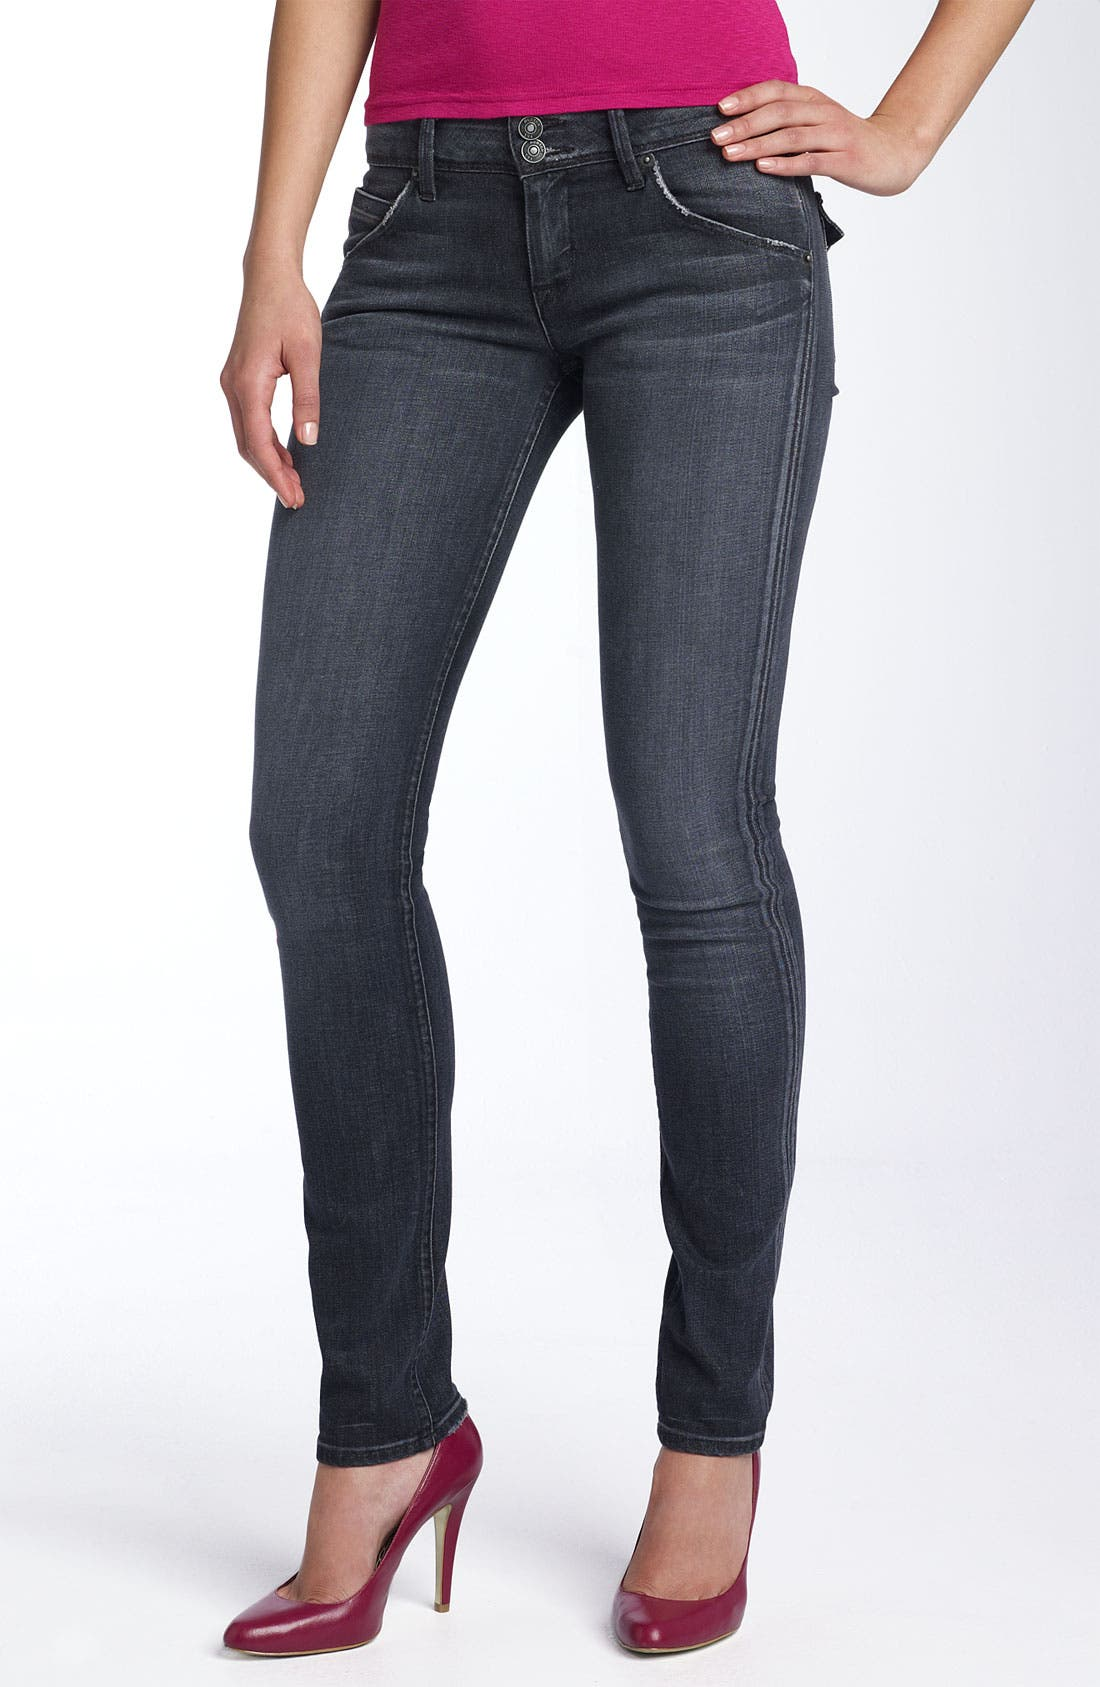 'Collin' Skinny Jeans,                             Main thumbnail 1, color,                             017